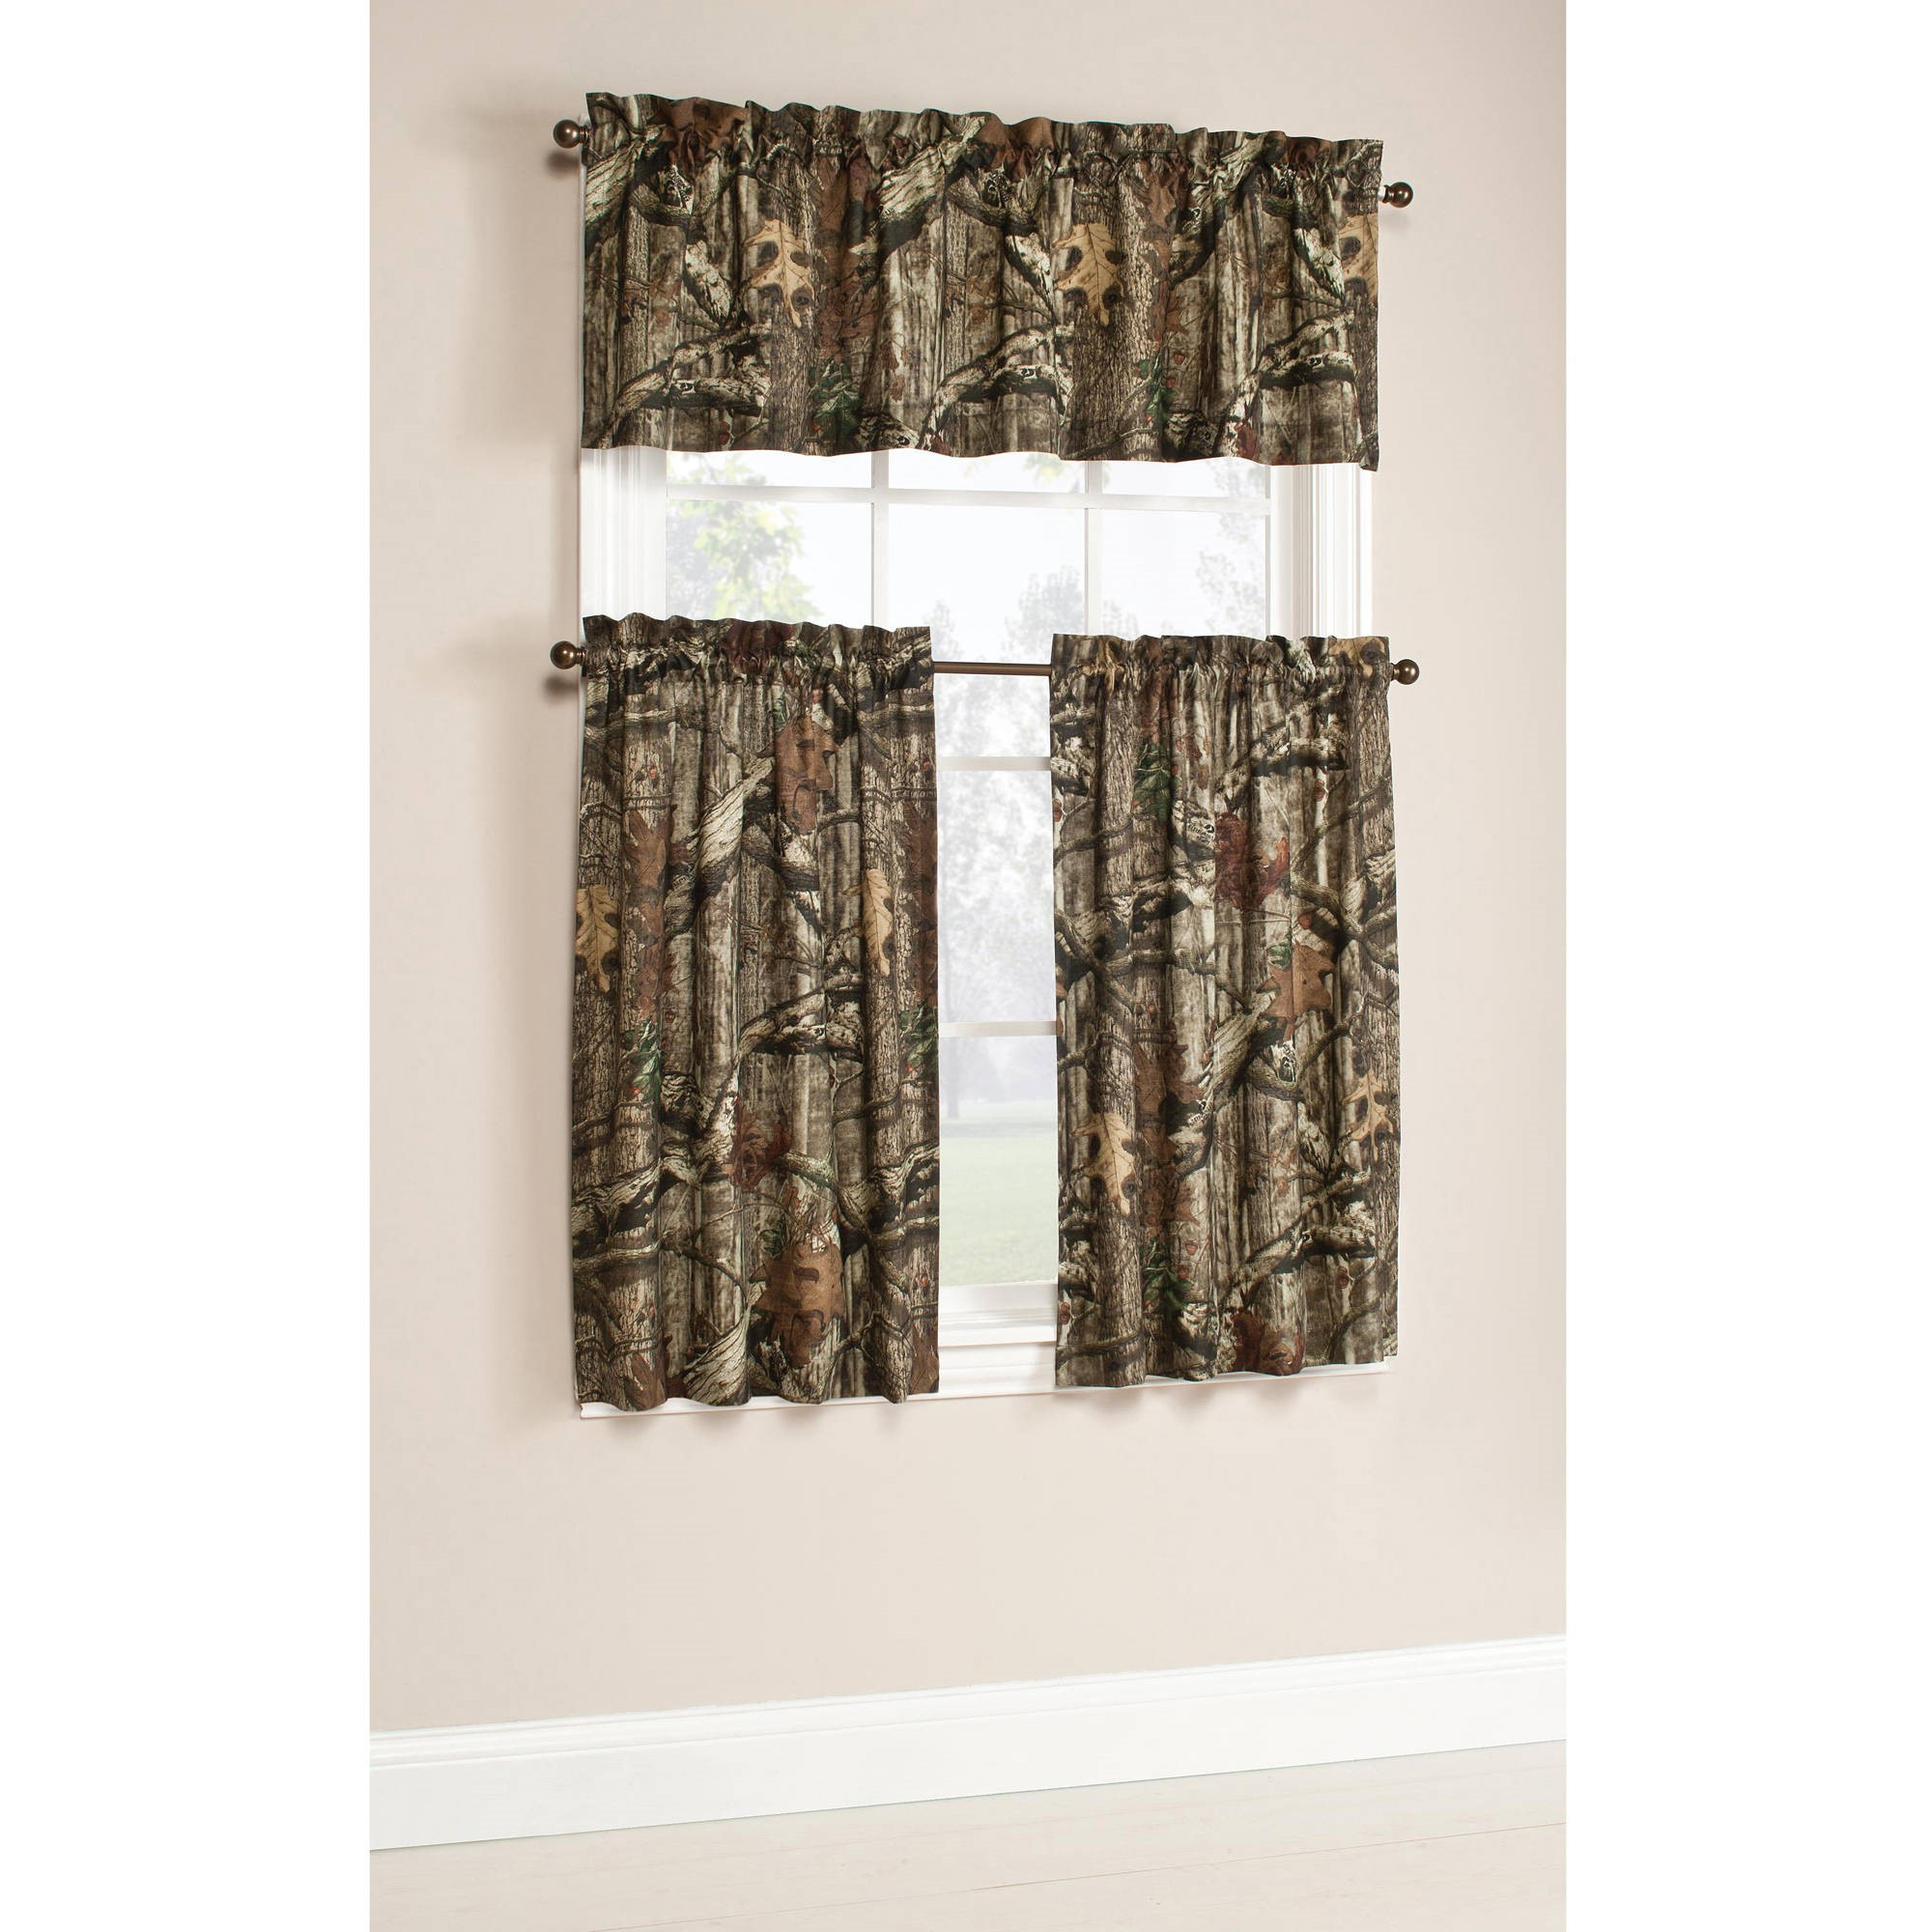 Mossy Oak Break-Up Infinity Camouflage Print Window Kitchen Curtains, Set of 2 or Valance by 1888 Mills, LLC